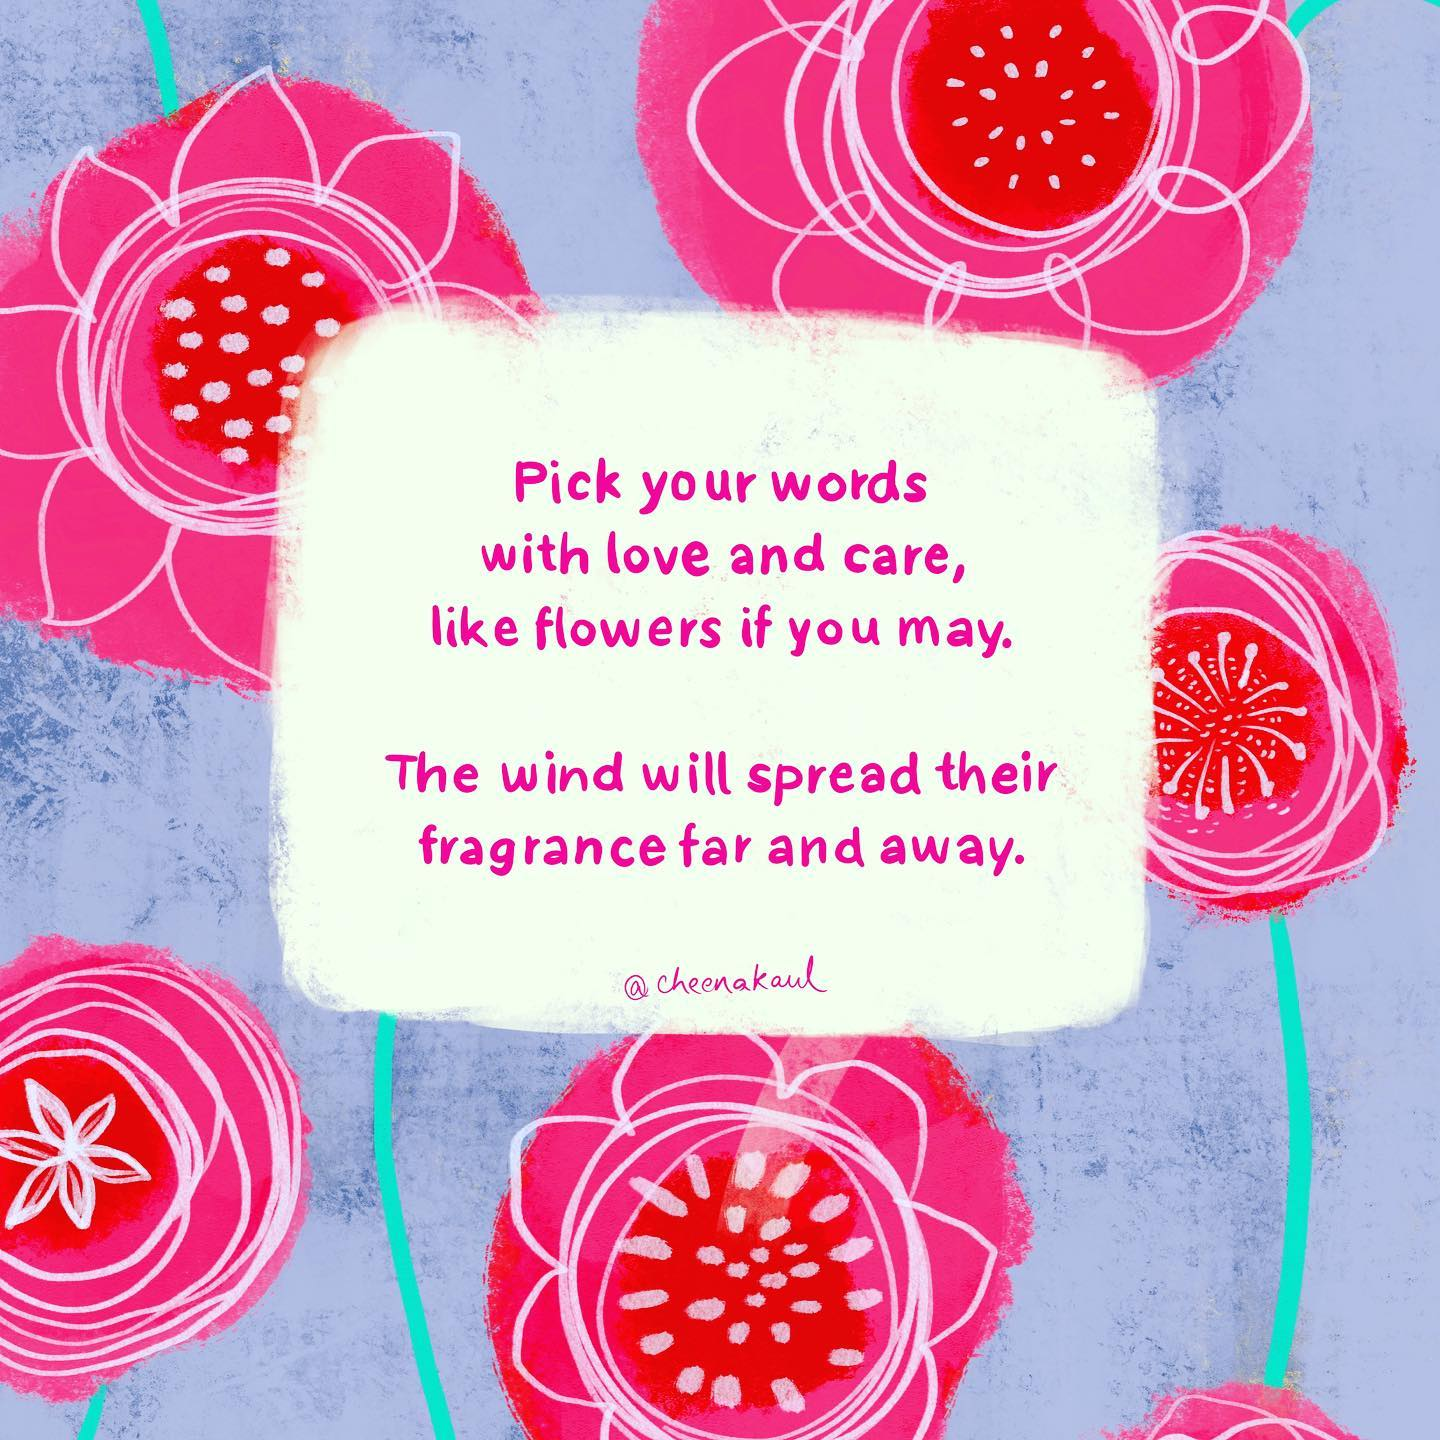 Pick your words with love and care, like flowers if you may. The wind will spread their fragrance far and away.